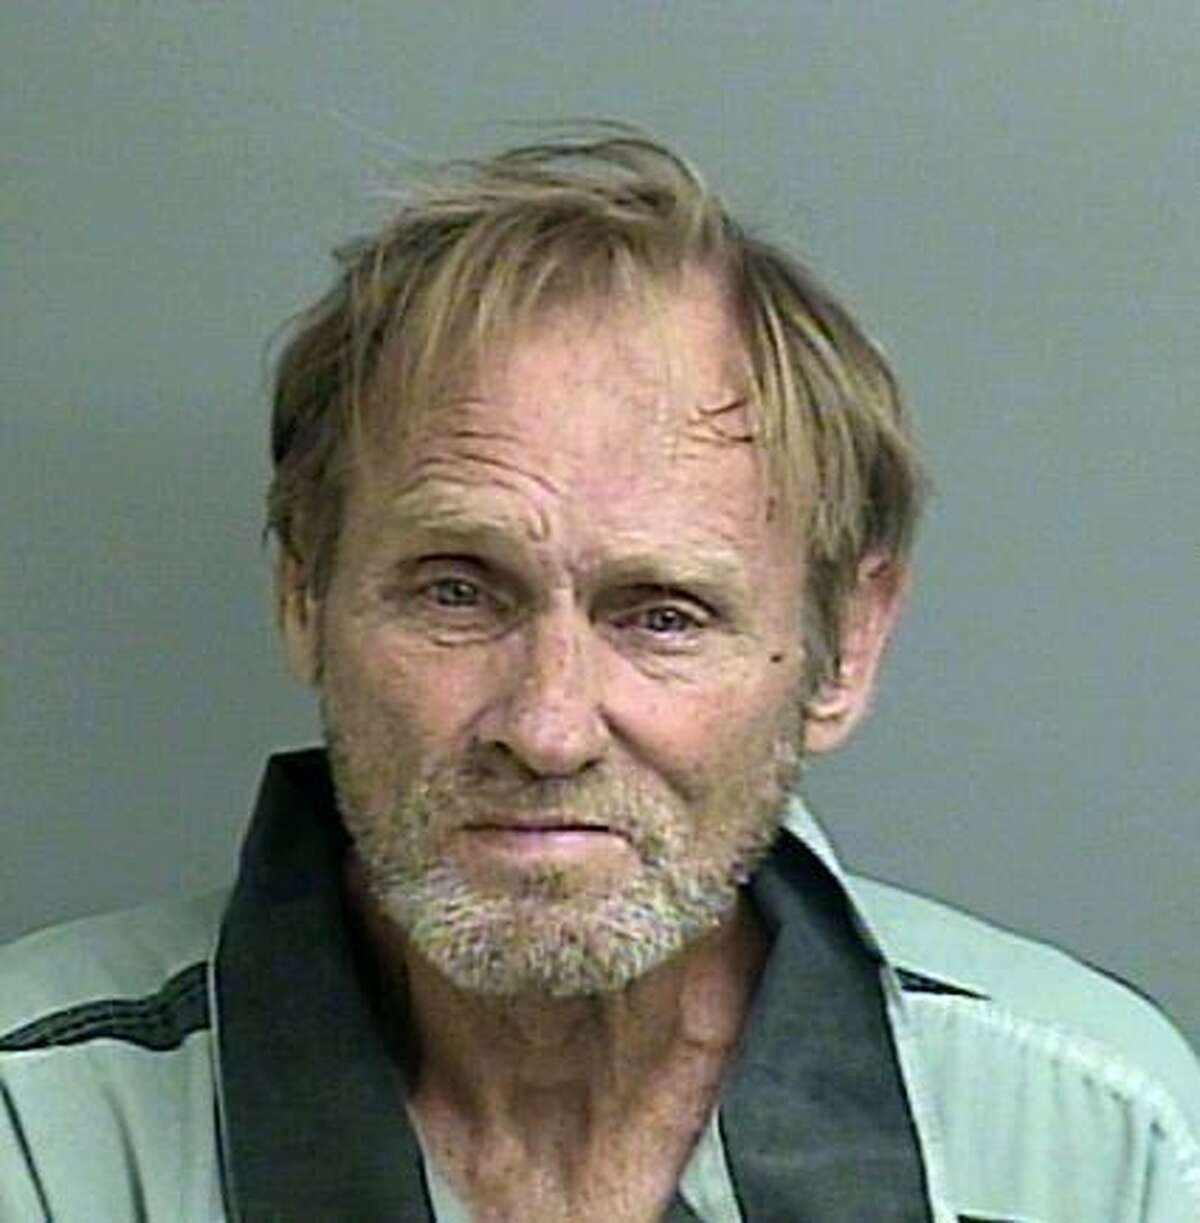 Bobby Gene Martin was sentenced to two life terms in prison after 10 arrests for drunk driving and a retaliation threat.